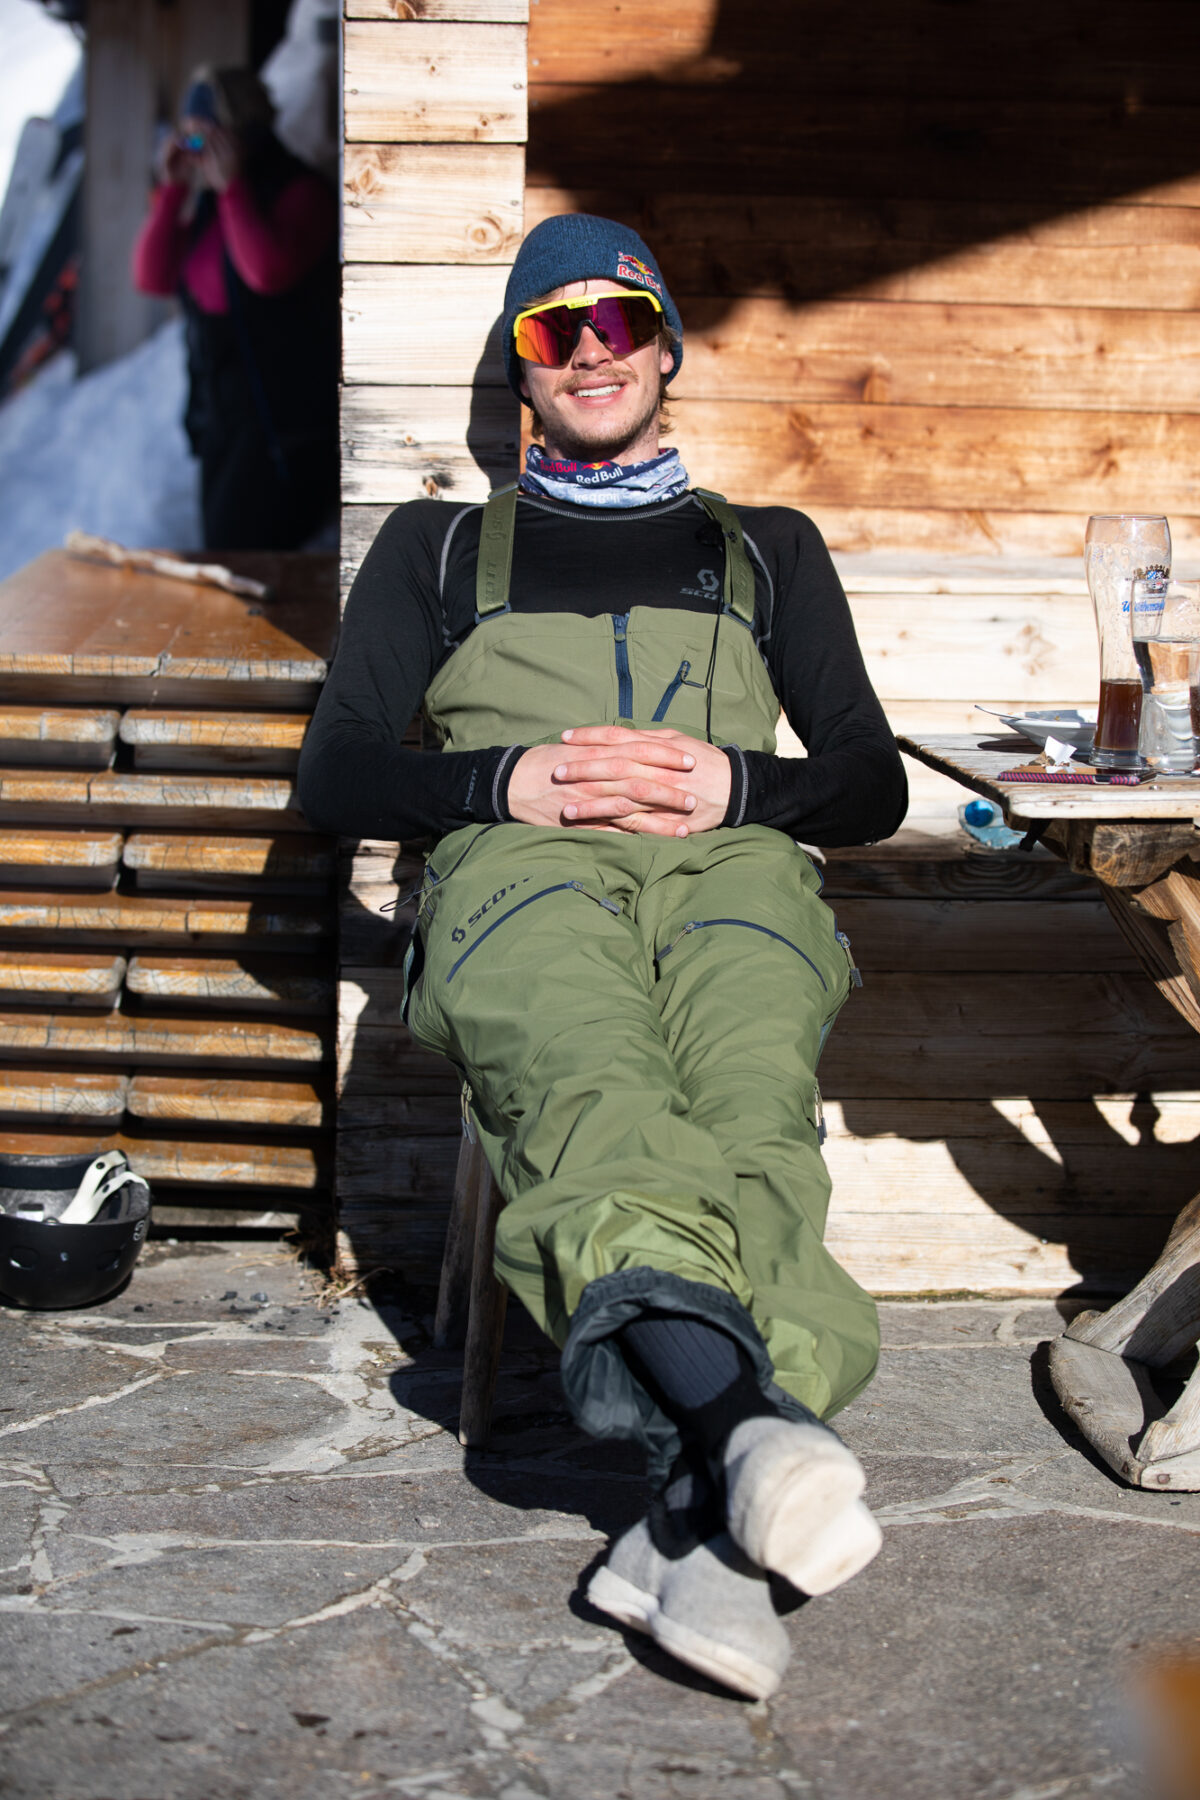 Fabian Lentsch relaxes after skiing big mountain dream lines